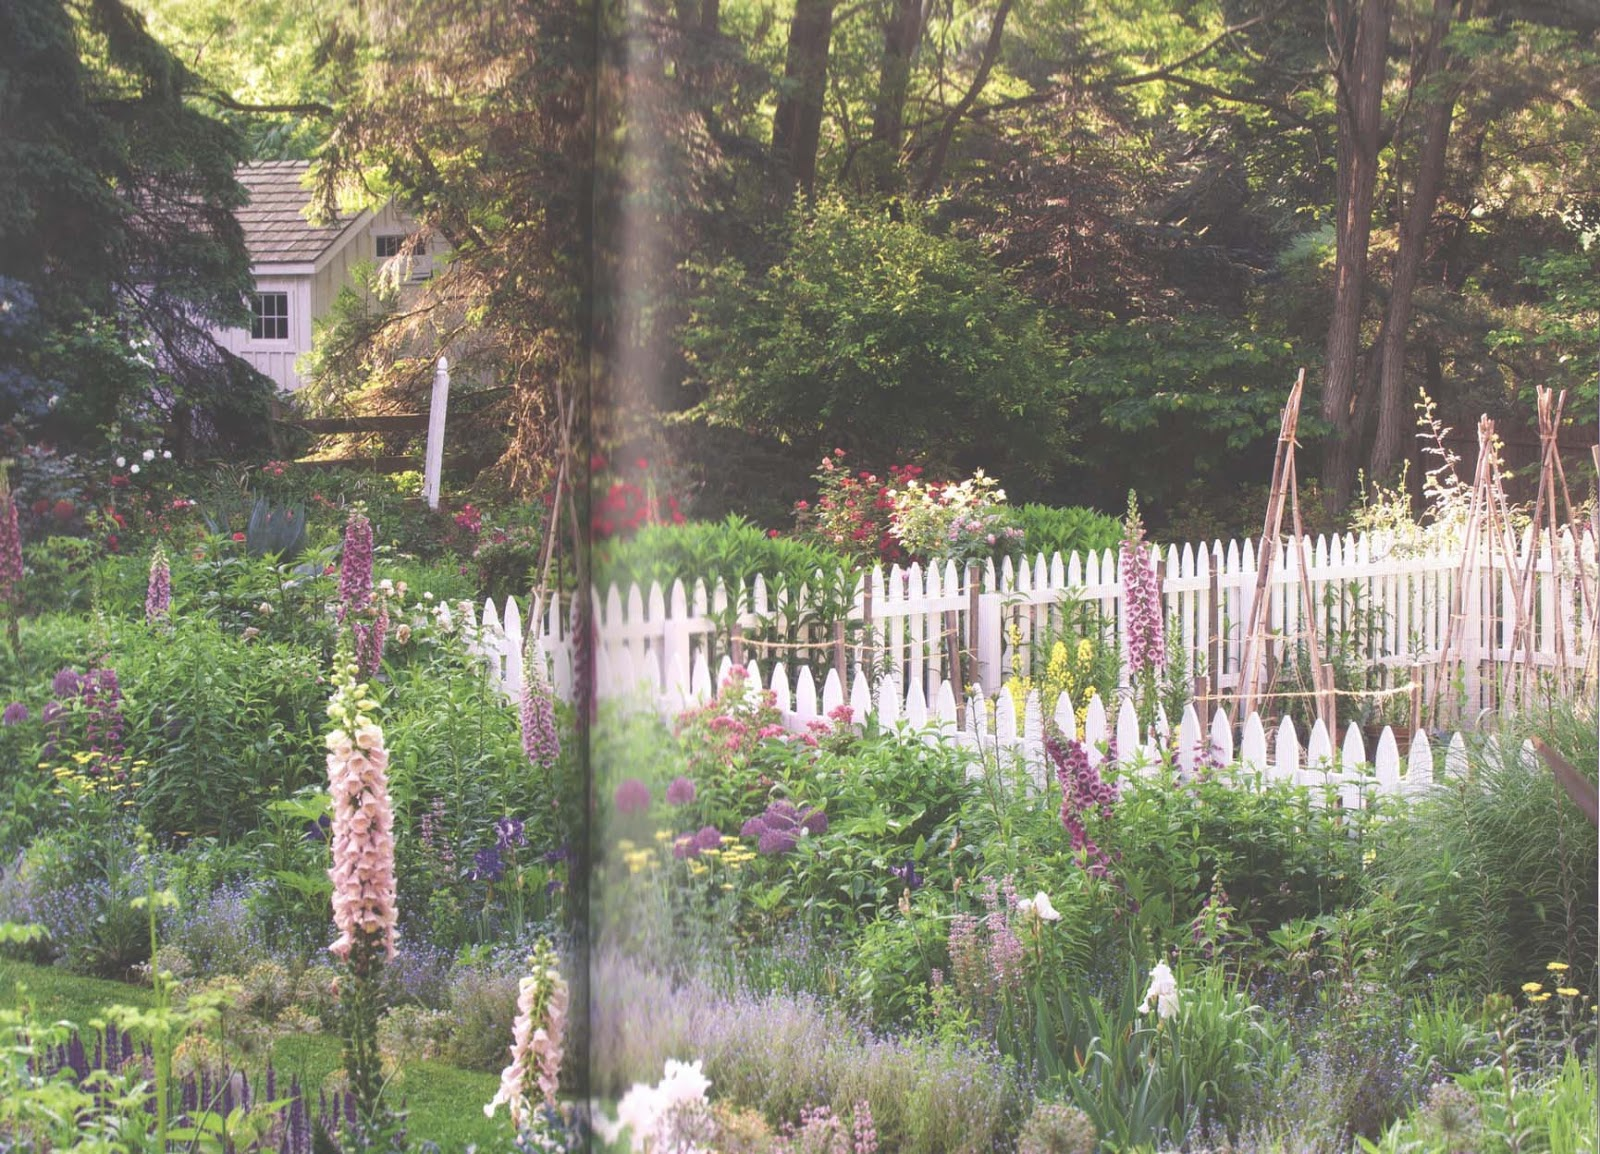 Now This Is What A Garden Should Be! (It Even Has A White Picket Fence     My Favorite.)